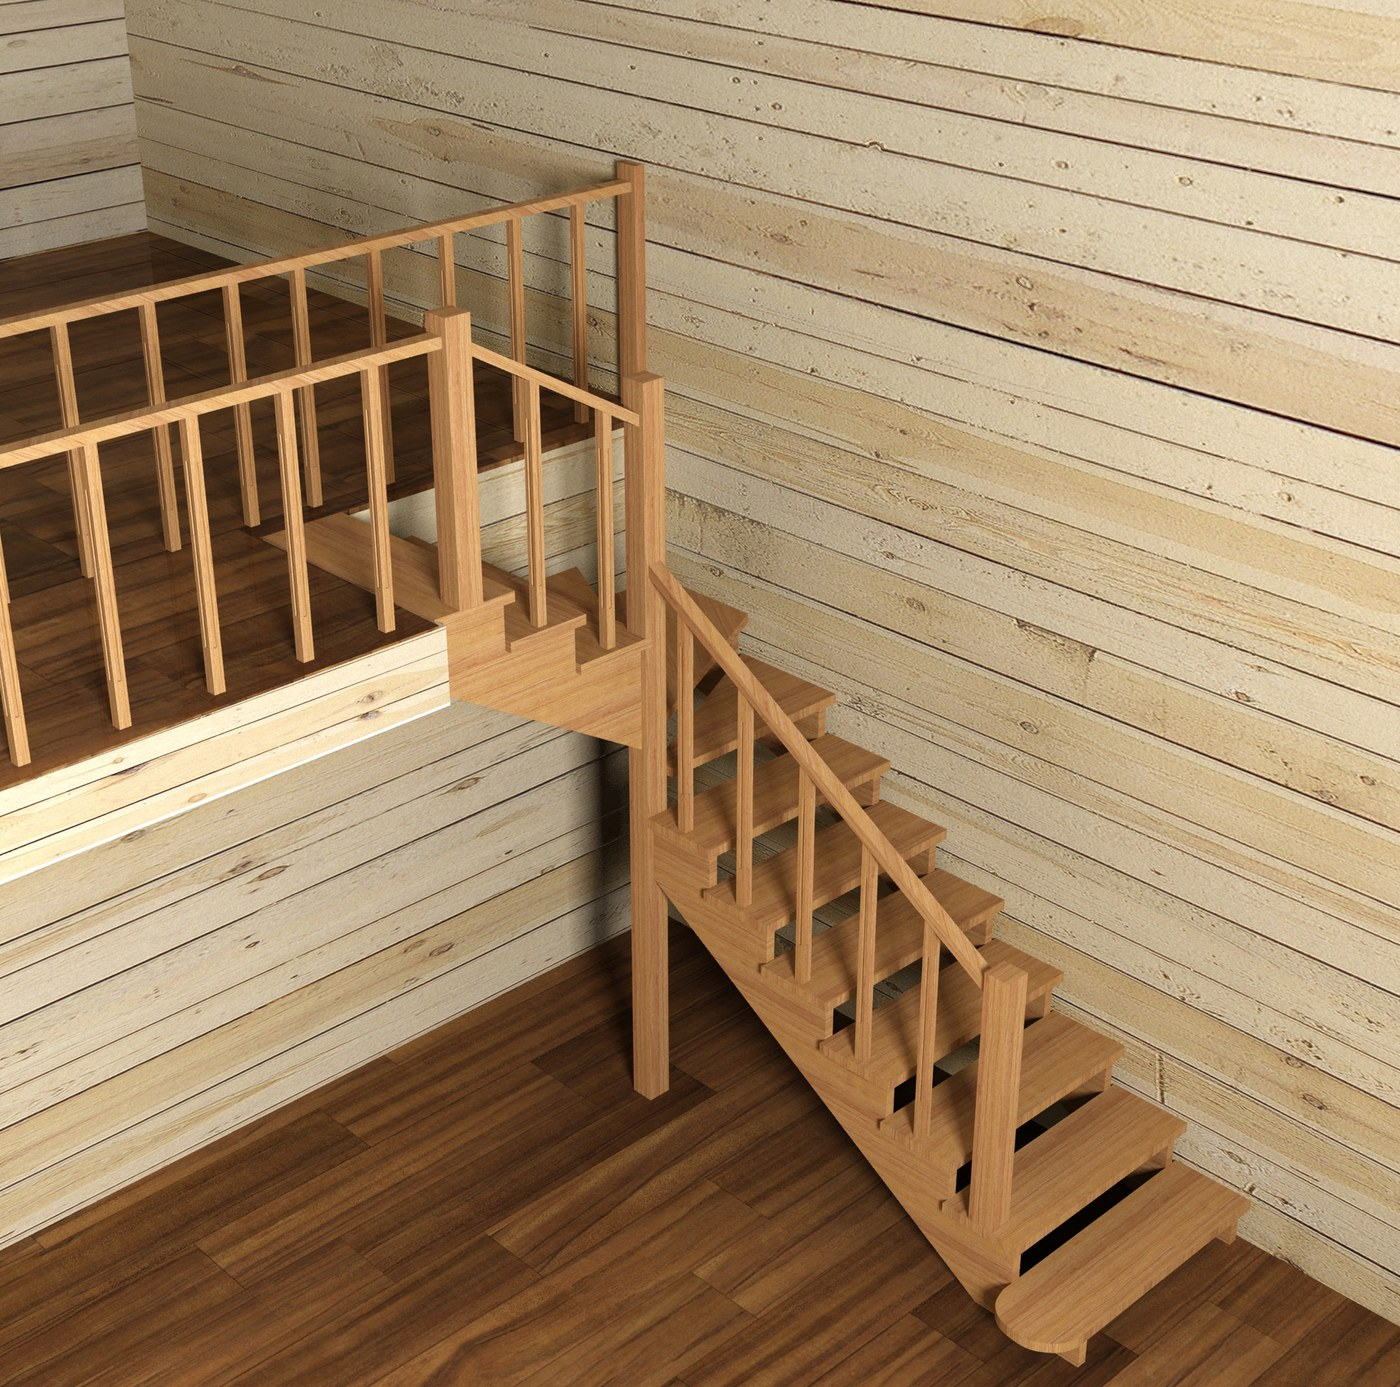 Choosing staircase construction in the wooden home